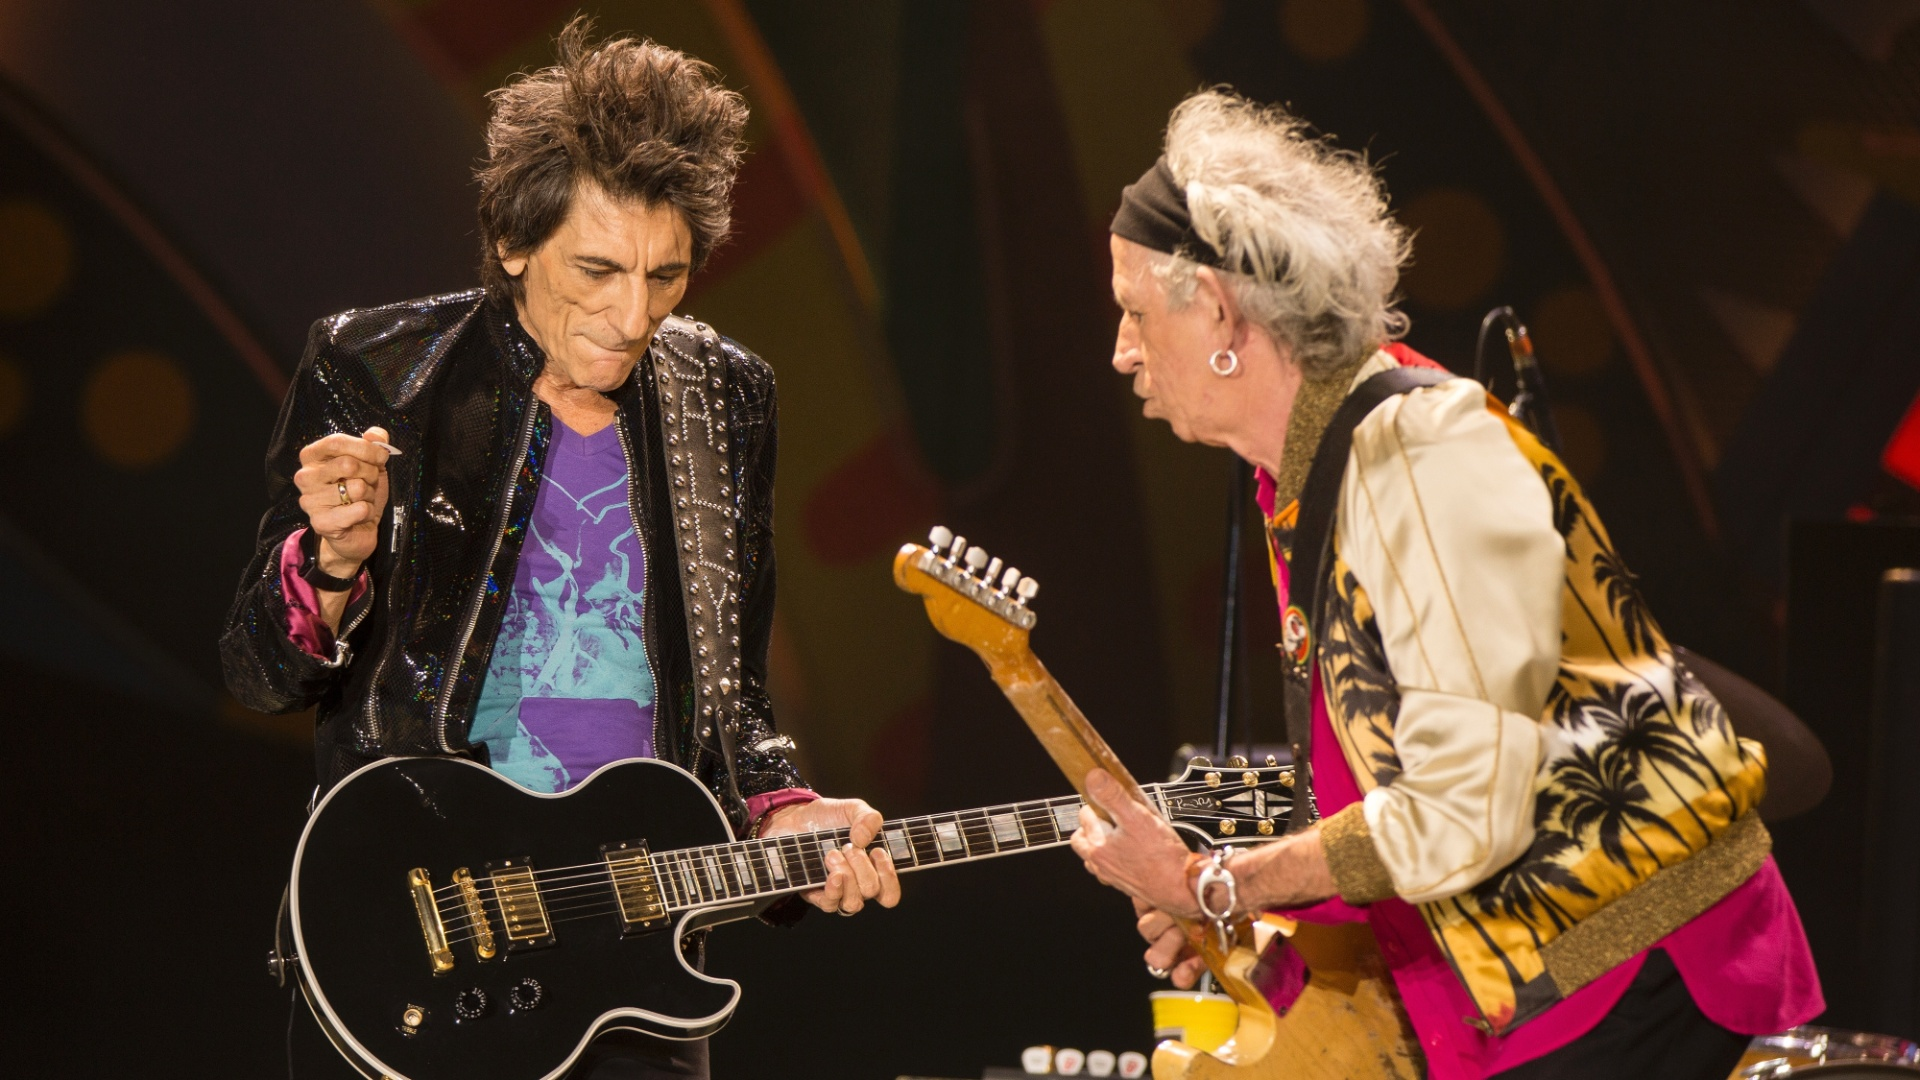 03.fev.2016 - Ron Wood e Keith Richards agitaram o público em Santiago, no Chile